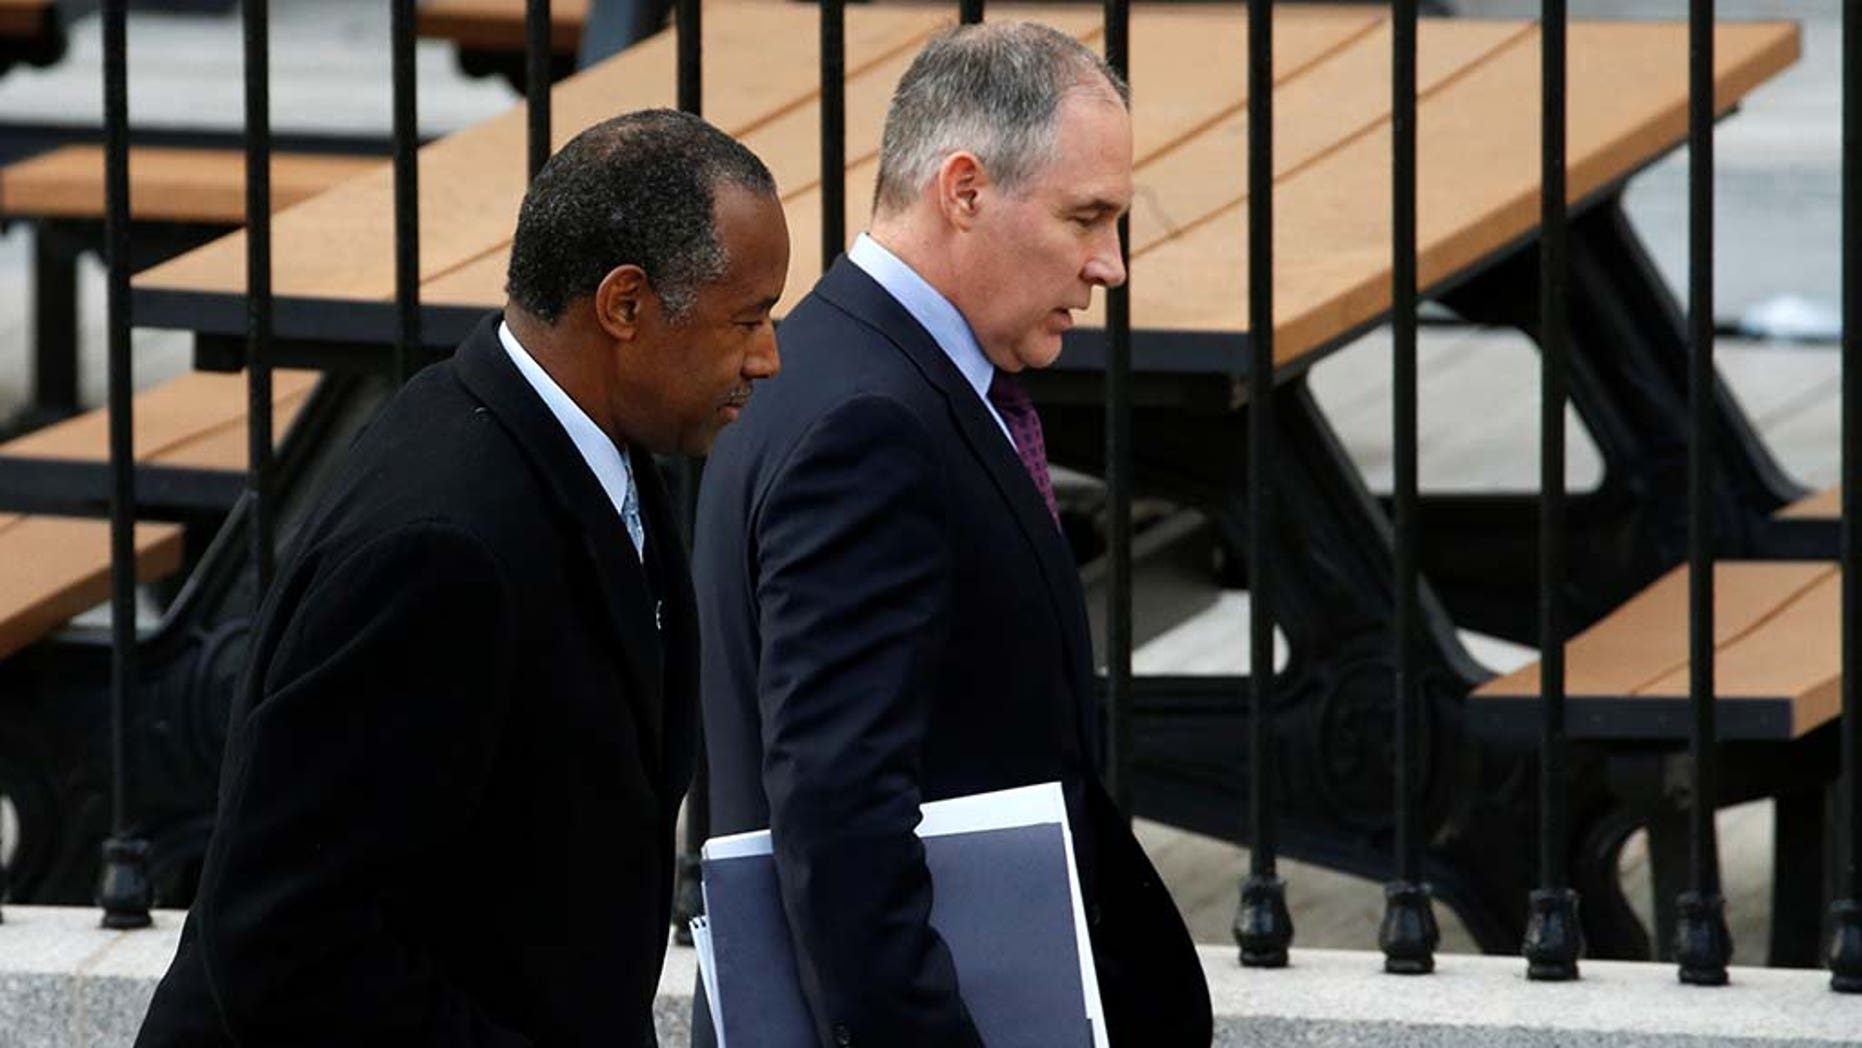 HUD Secretary Ben Carson and EPA Administrator Scott Pruitt are among the tiny fraction – 2 percent – nominated by President Trump of the 1,200 mostly senior executives who will be needed to run more than 200 federal agencies.